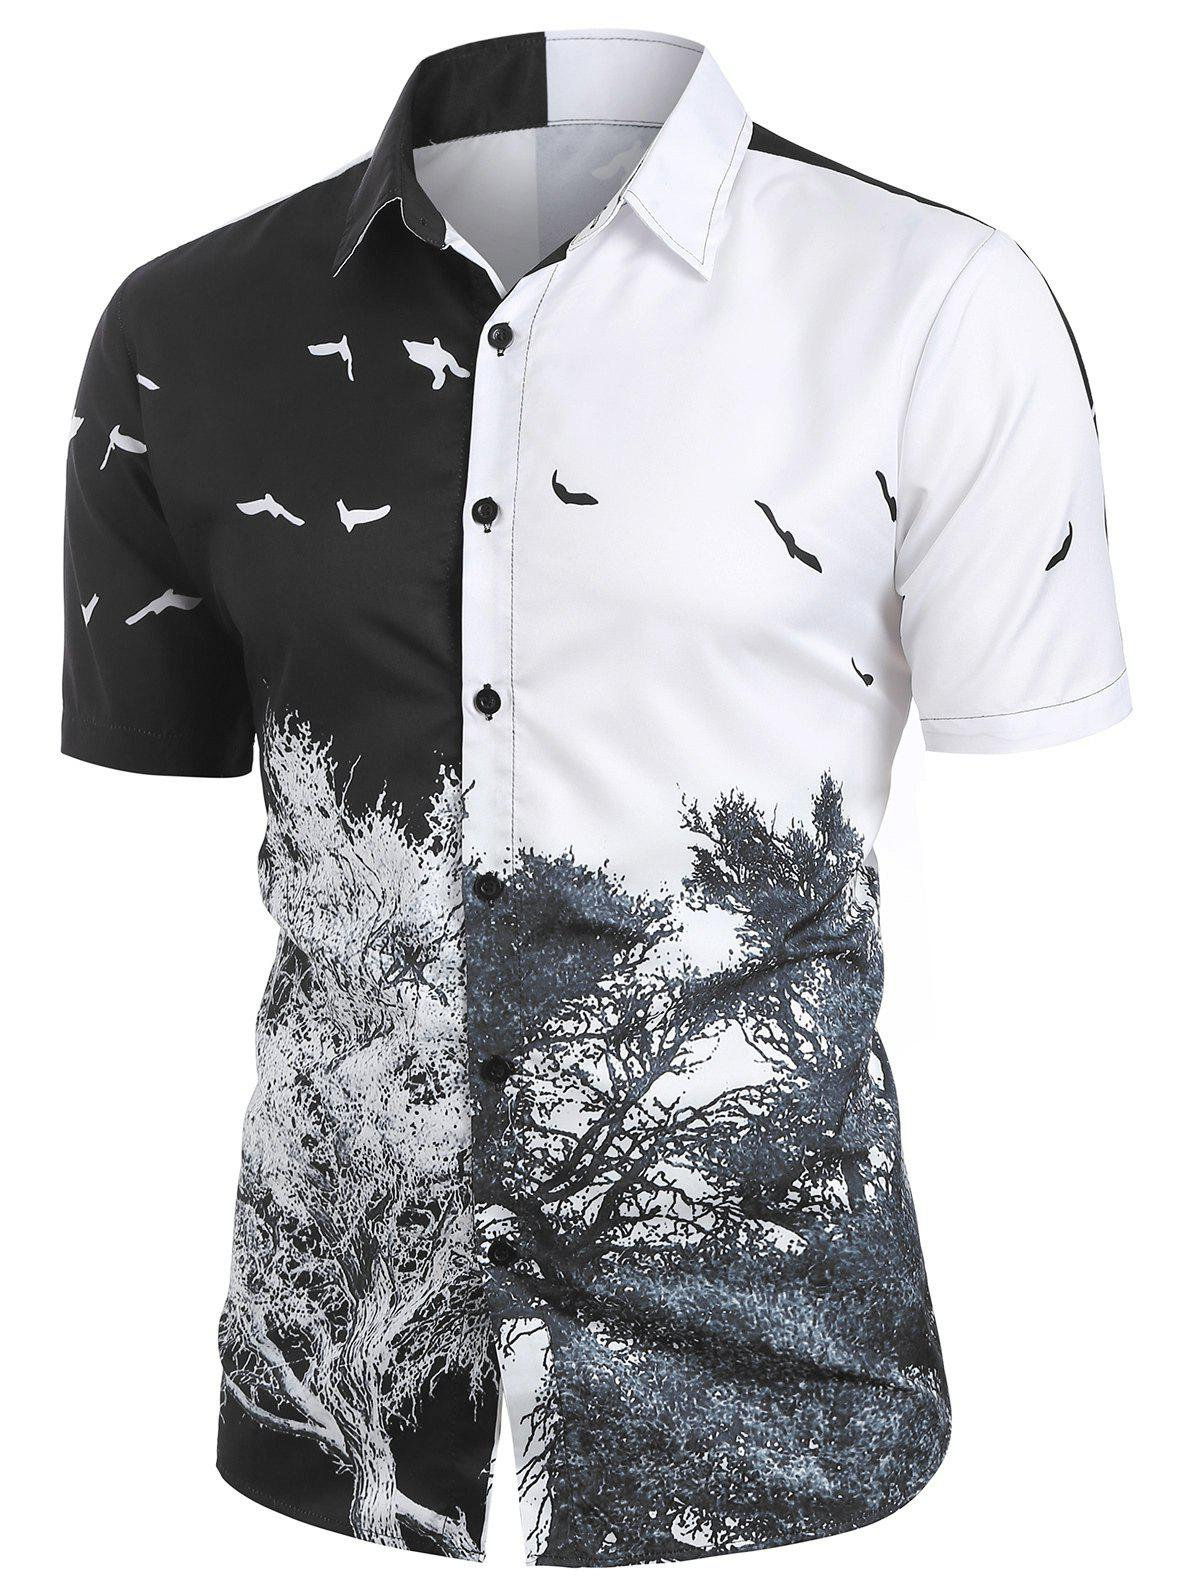 Tree and Bird Printed Button Up Shirt - multicolor 2XL